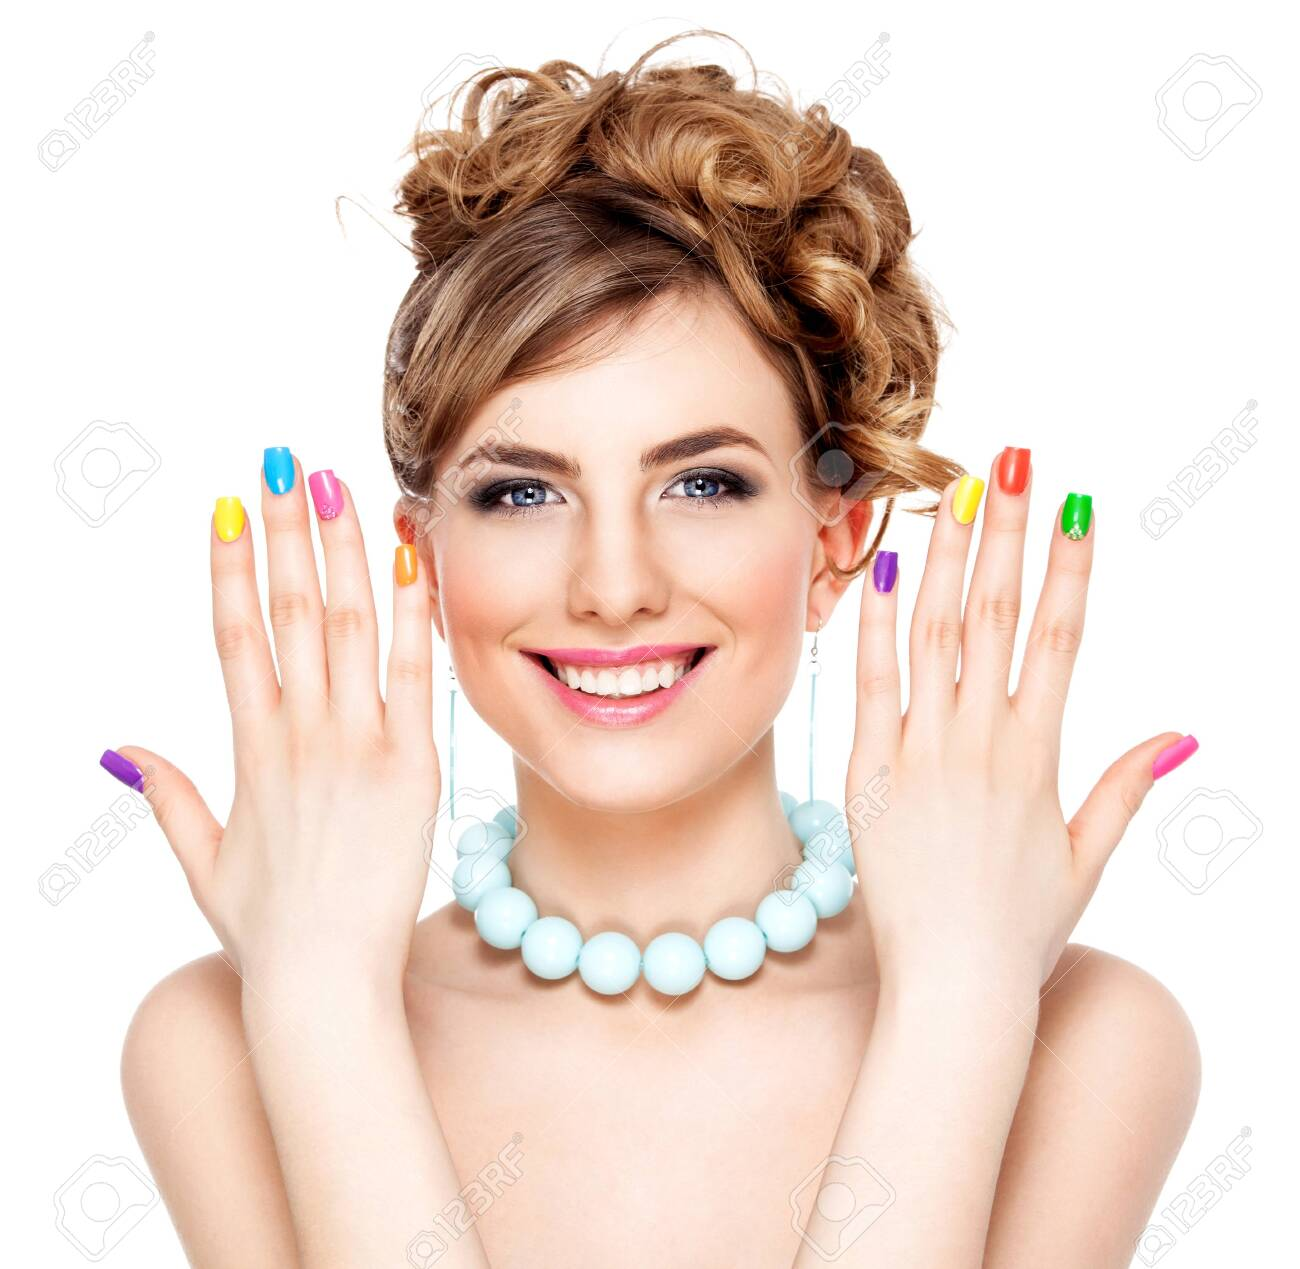 Young woman portrait with colorful makeup and nail polish, manicure, studio shot - 141605570